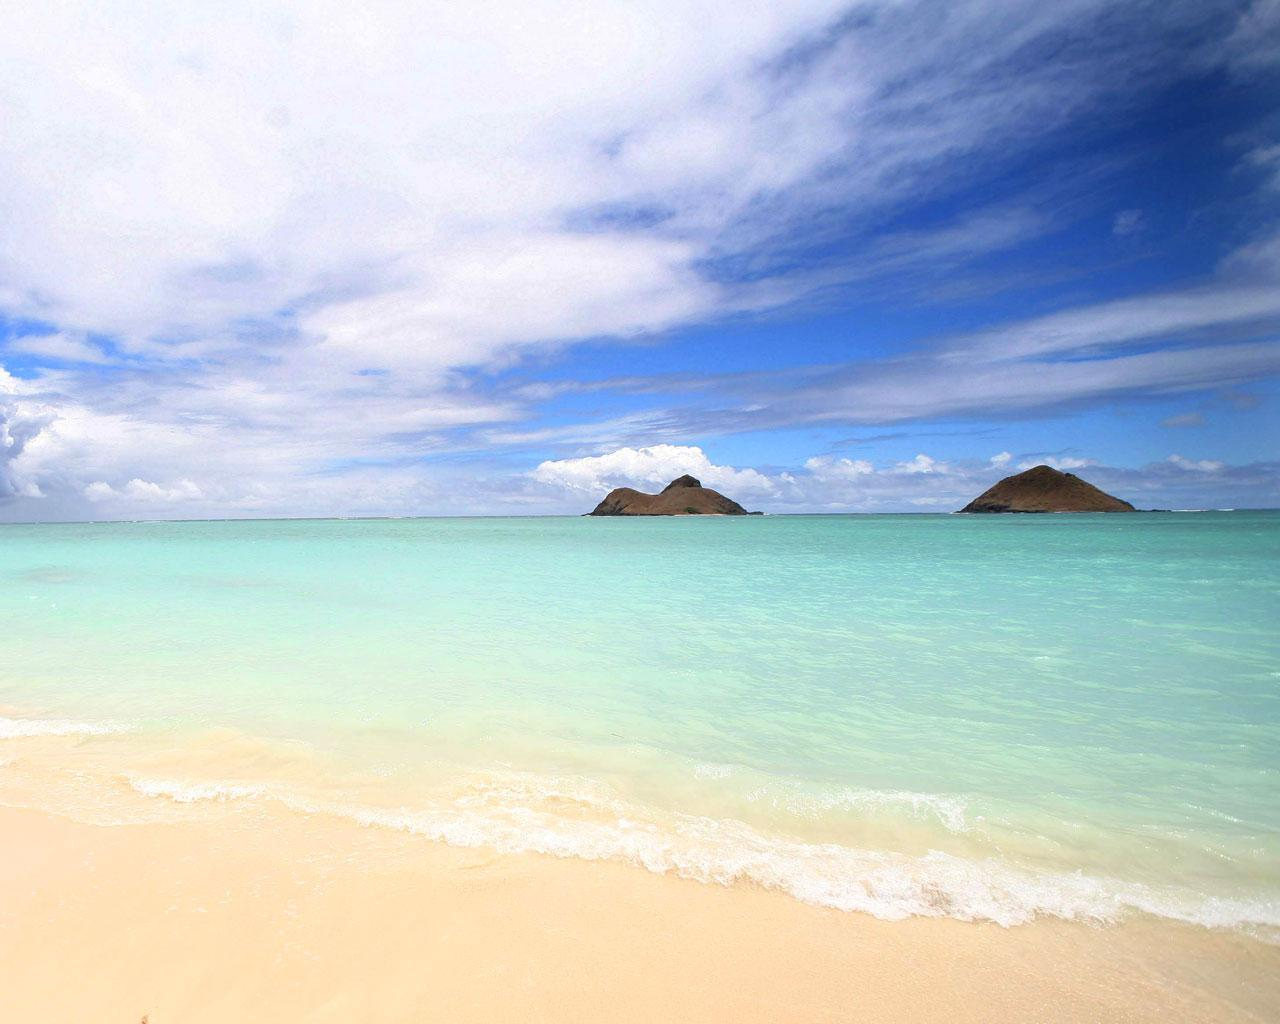 oahu 1280x1024 wallpaper 1 more kailua beach oahu wallpapers home 1280x1024